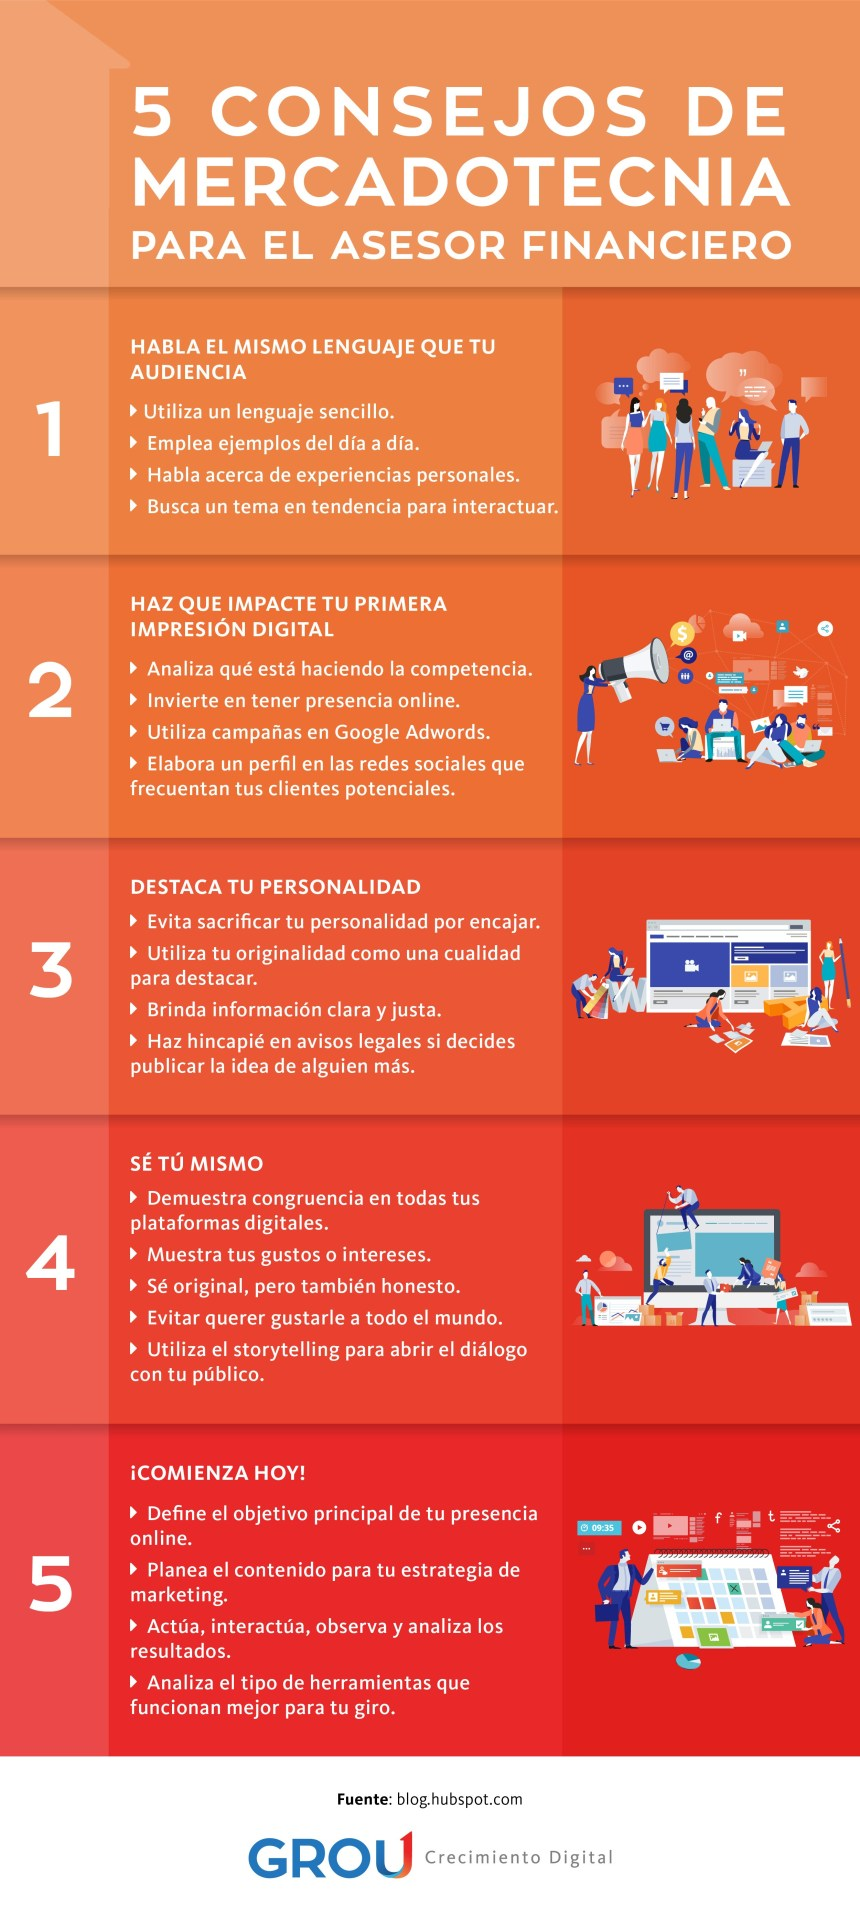 5 consejos de marketing para el asesor financiero #infografia #infographic #marketing